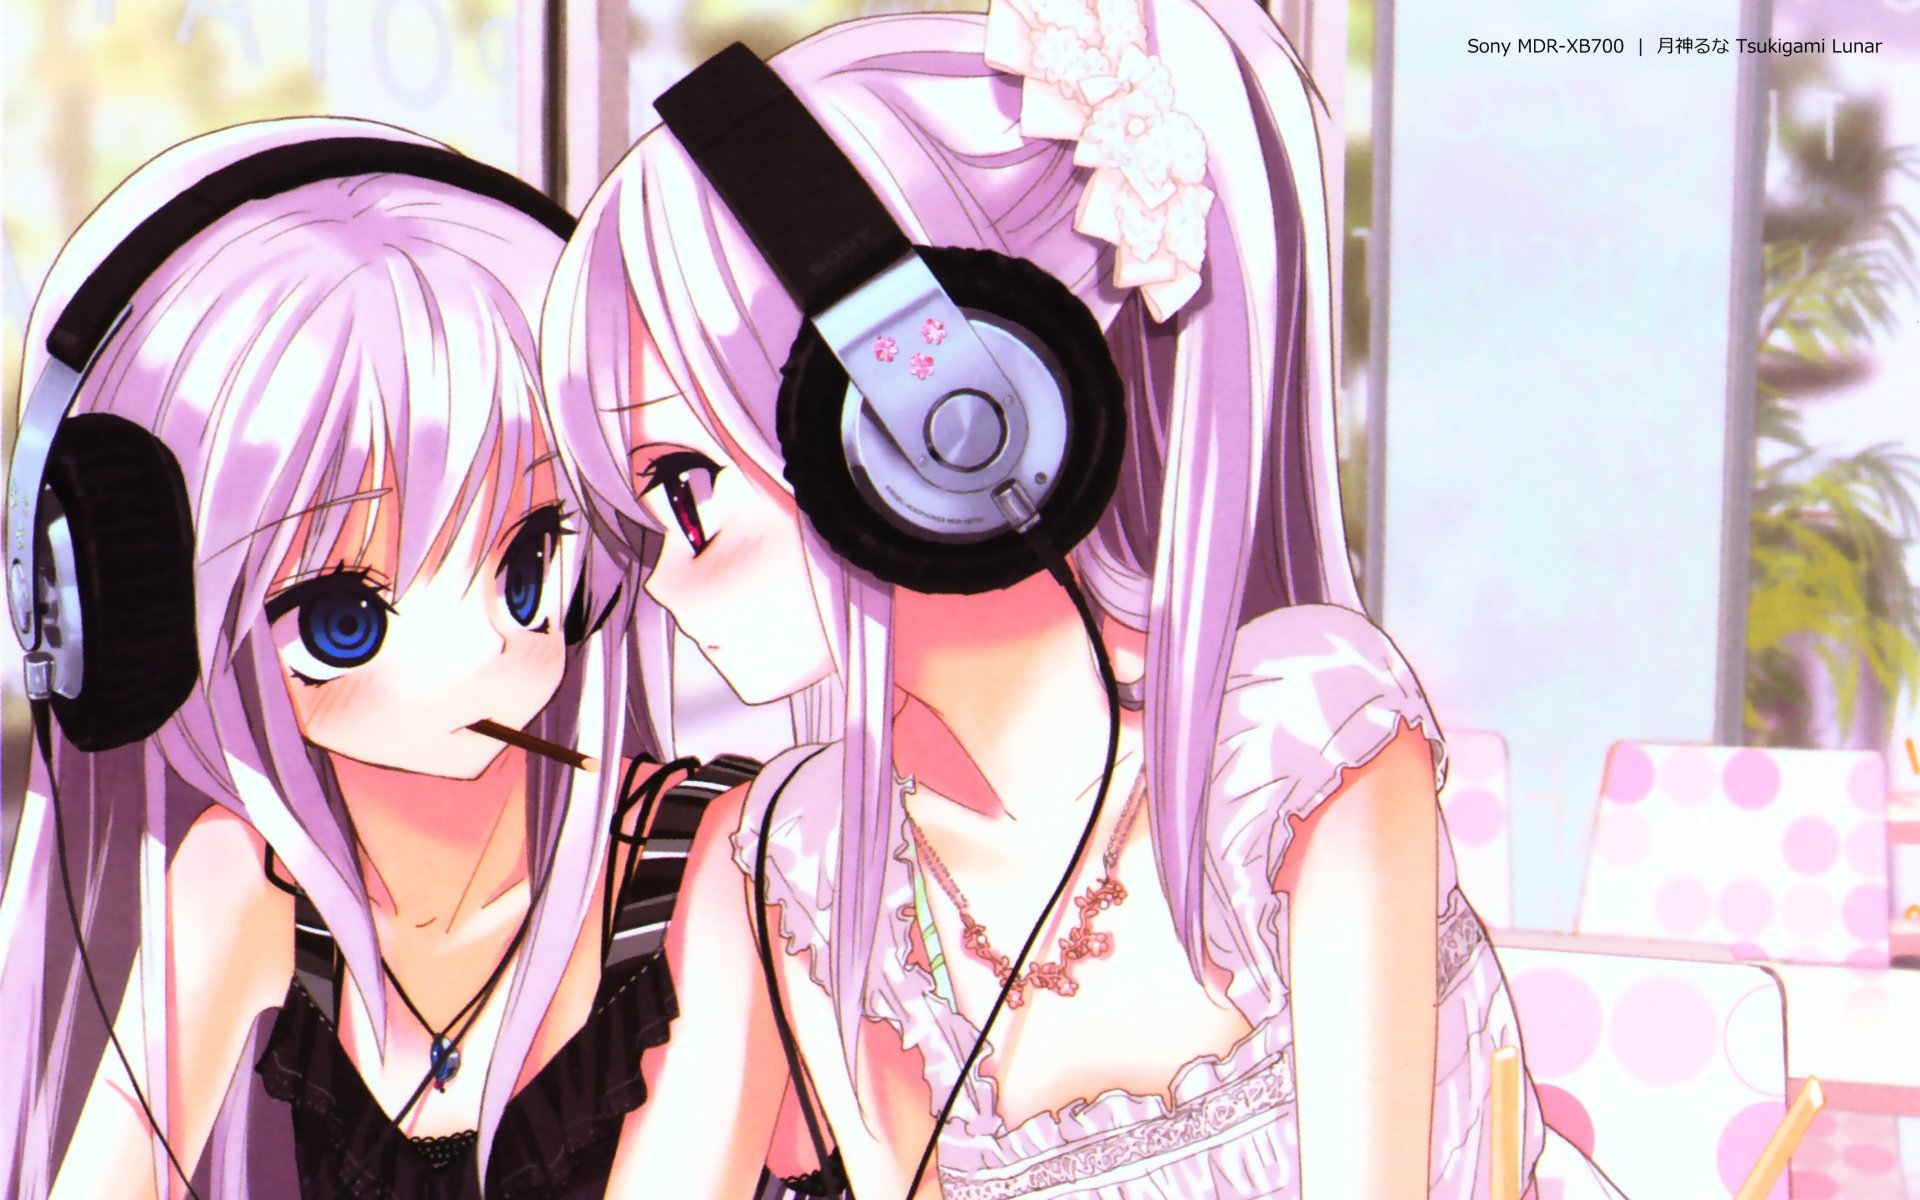 Awesome Headphones Anime free background ID:142274 for hd 1920x1200 desktop